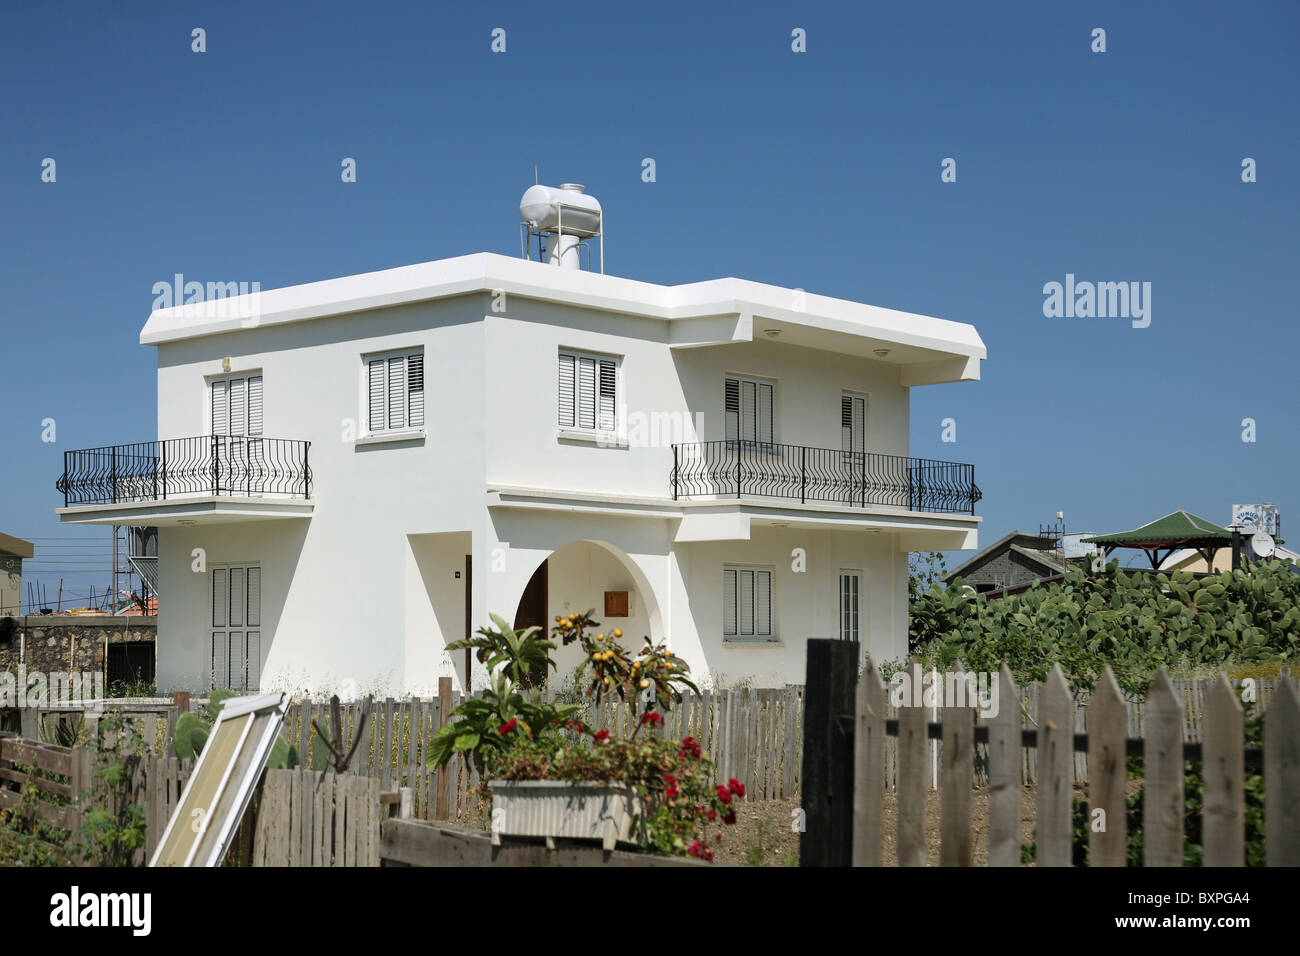 A white detached house, Kyrenia, Turkish Republic of Northern Cyprus - Stock Image